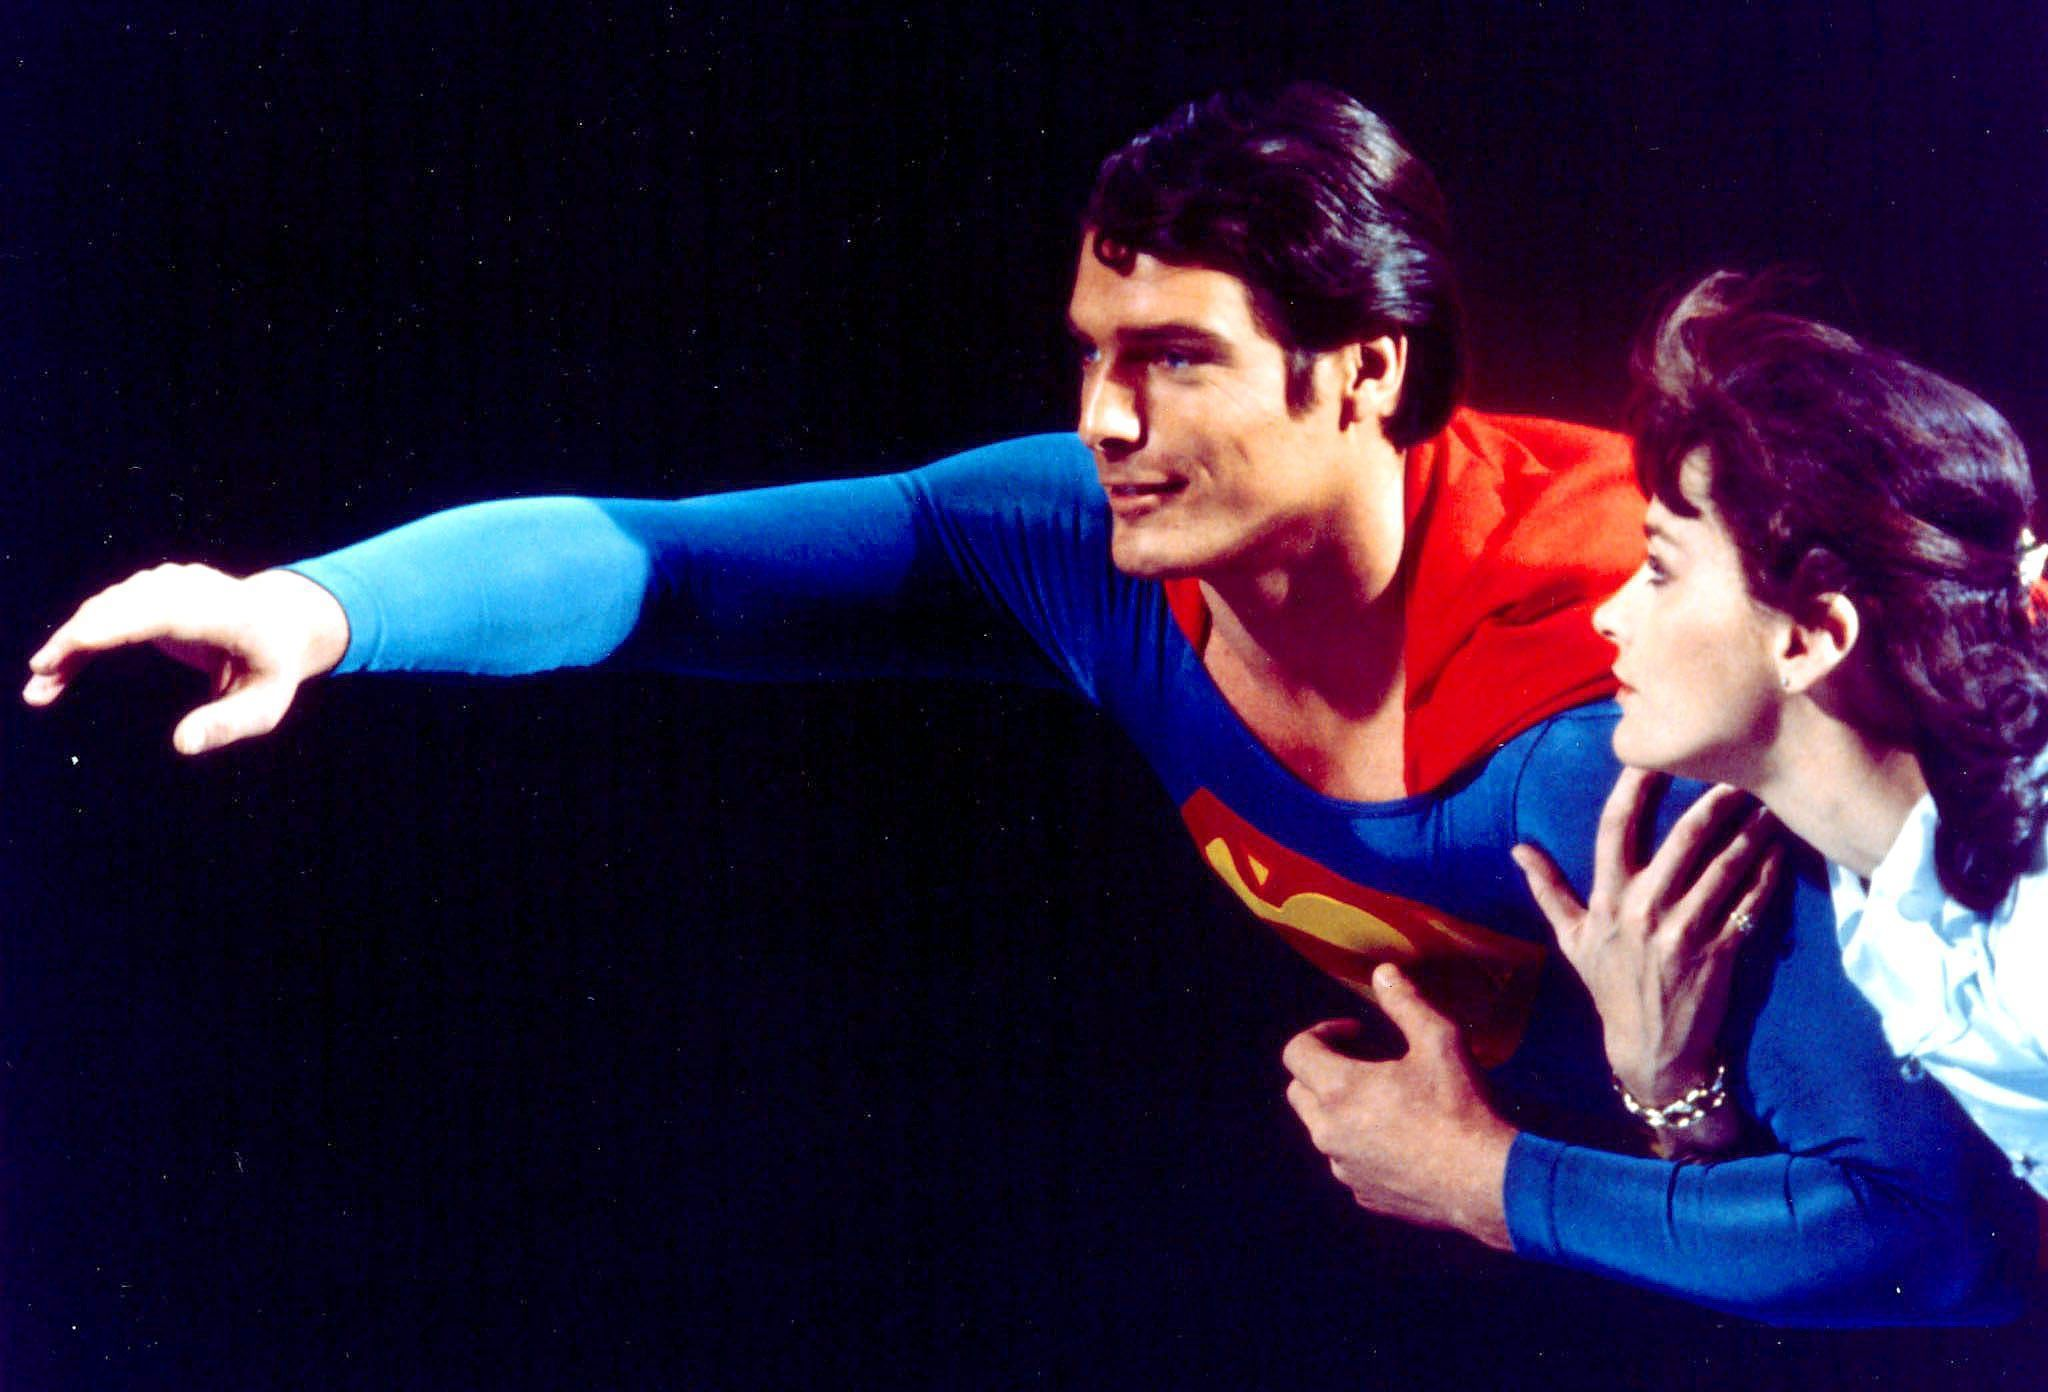 'Superman' star Christopher Reeve dies at age 52